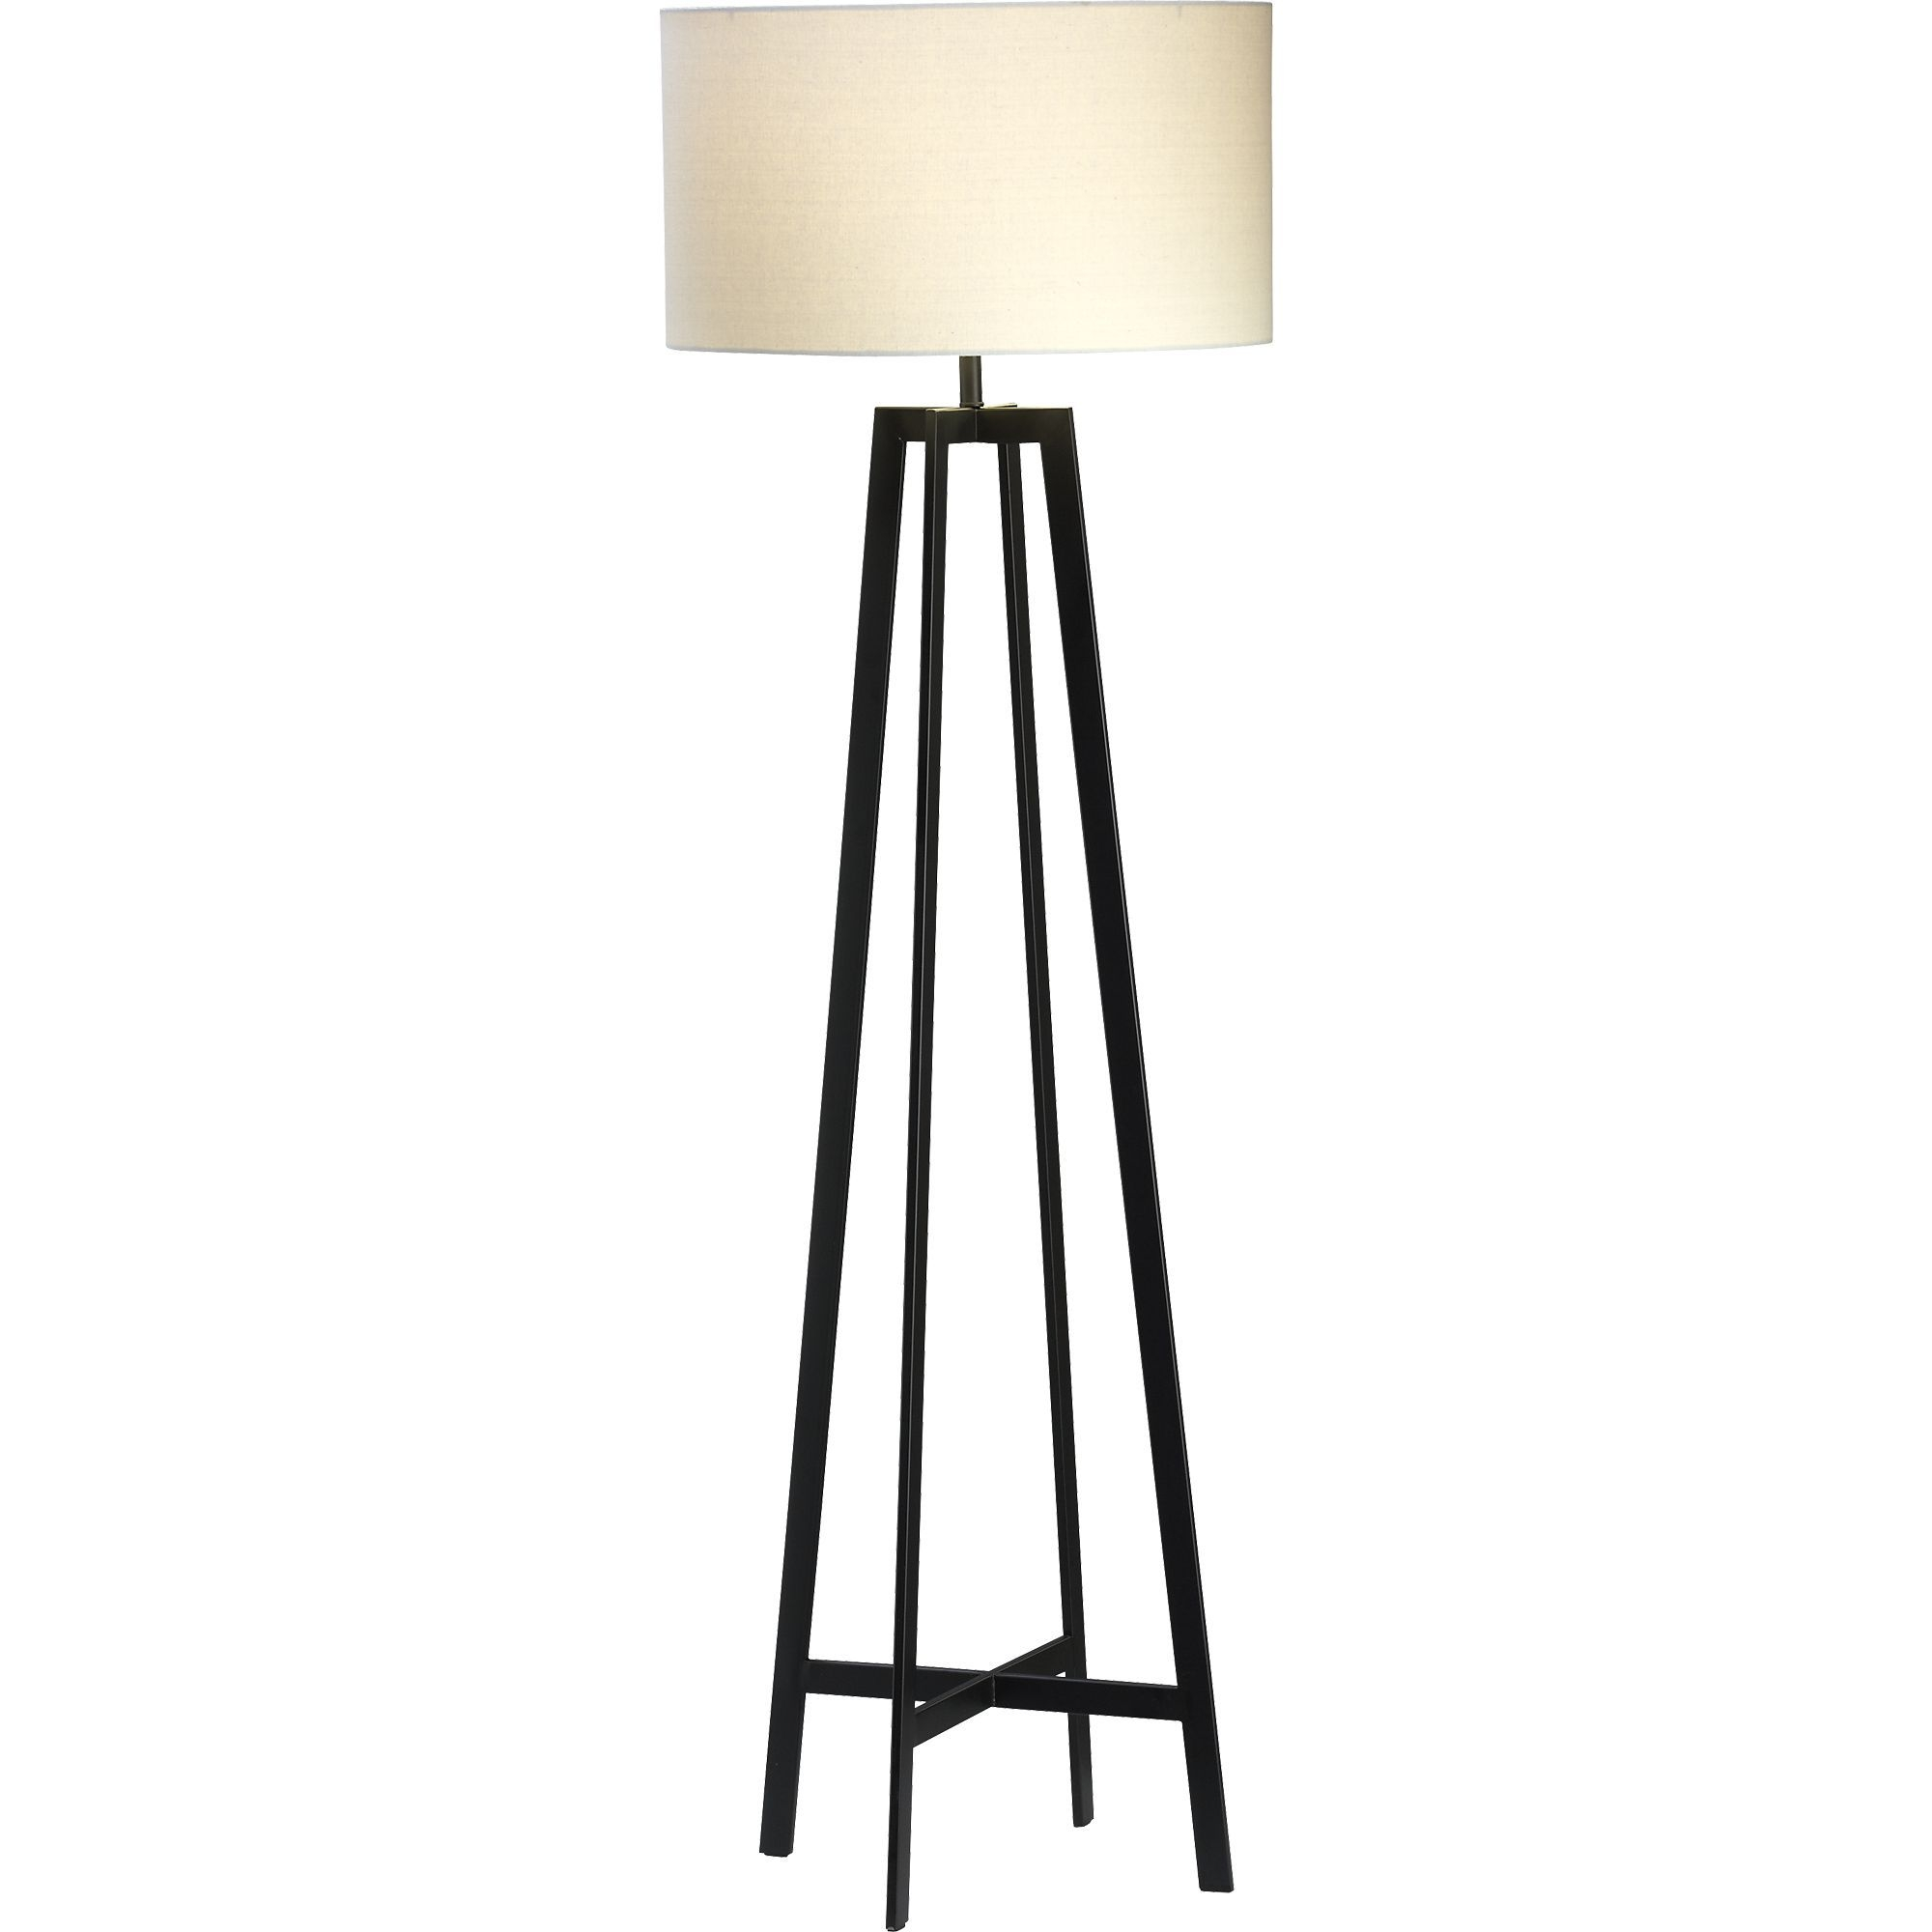 Crate Barrel Floor Lamp Foter